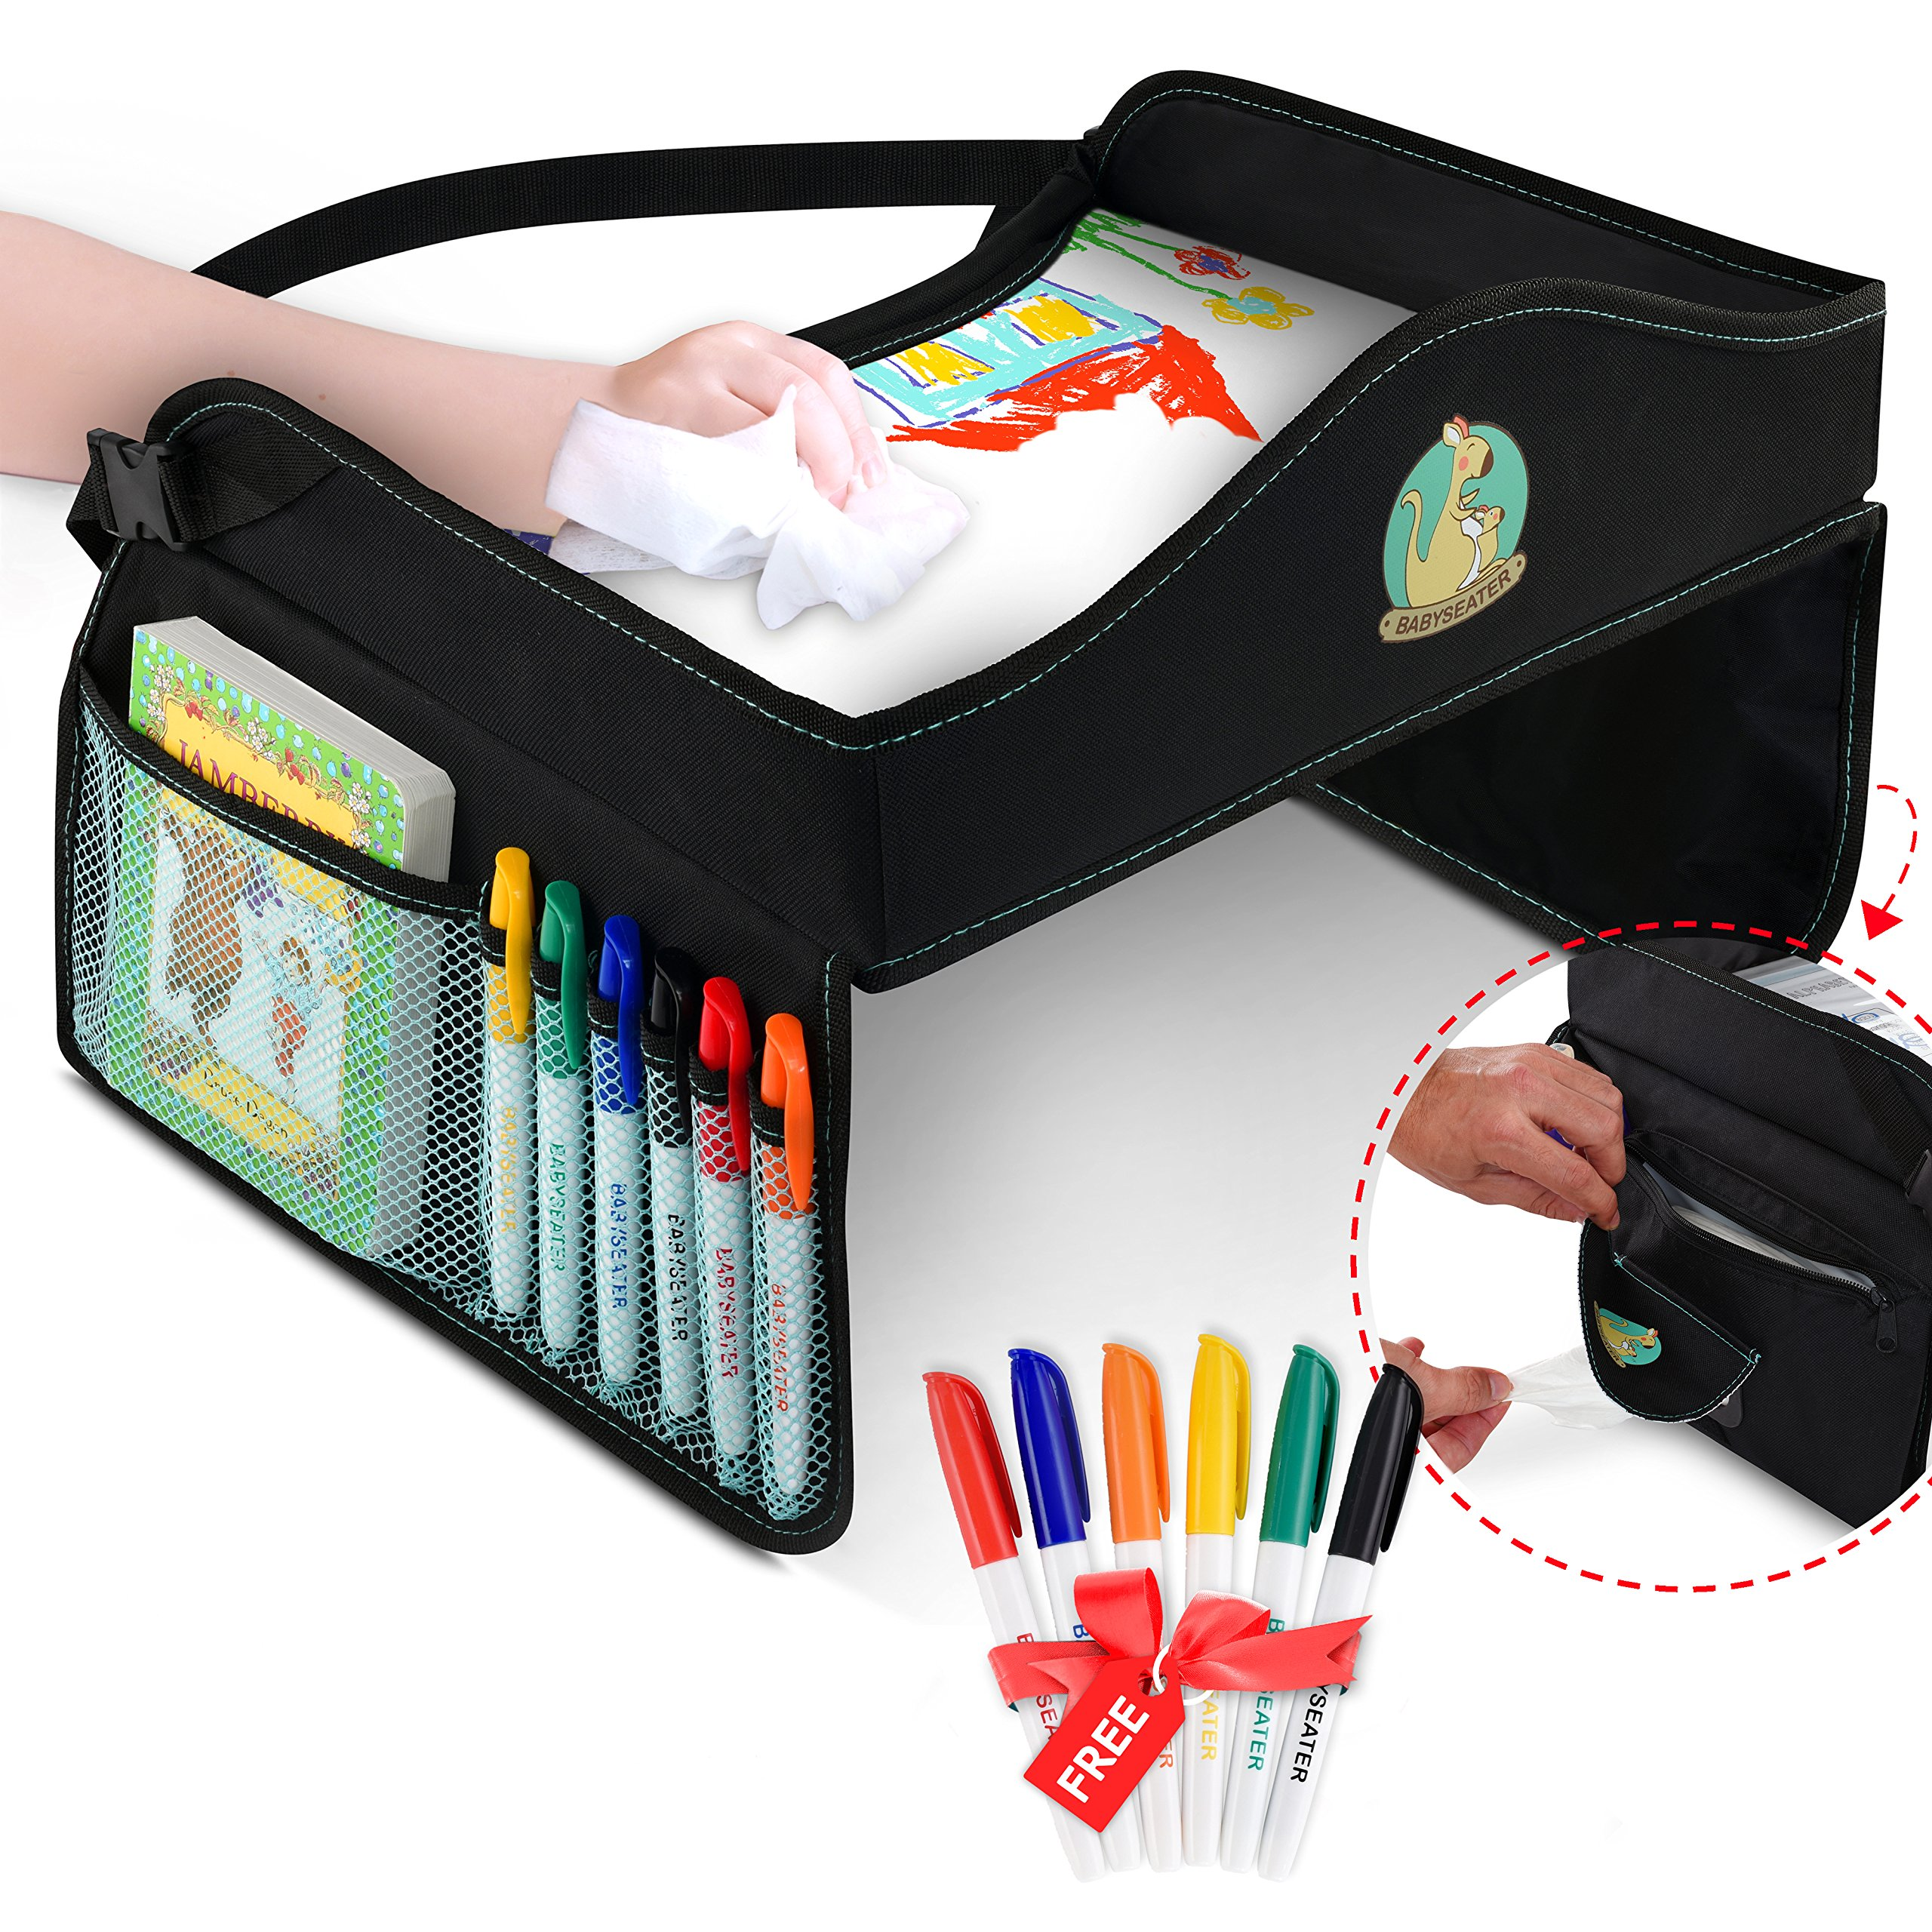 Play Tray Kids Travel Tray with Dry Erase Top for Snacks & Car Activities for Toddlers - Dry Erase Markers Gift - Child Car Seat Tray for Travel by Car and Plane | Road Trip Essential by BabySeater